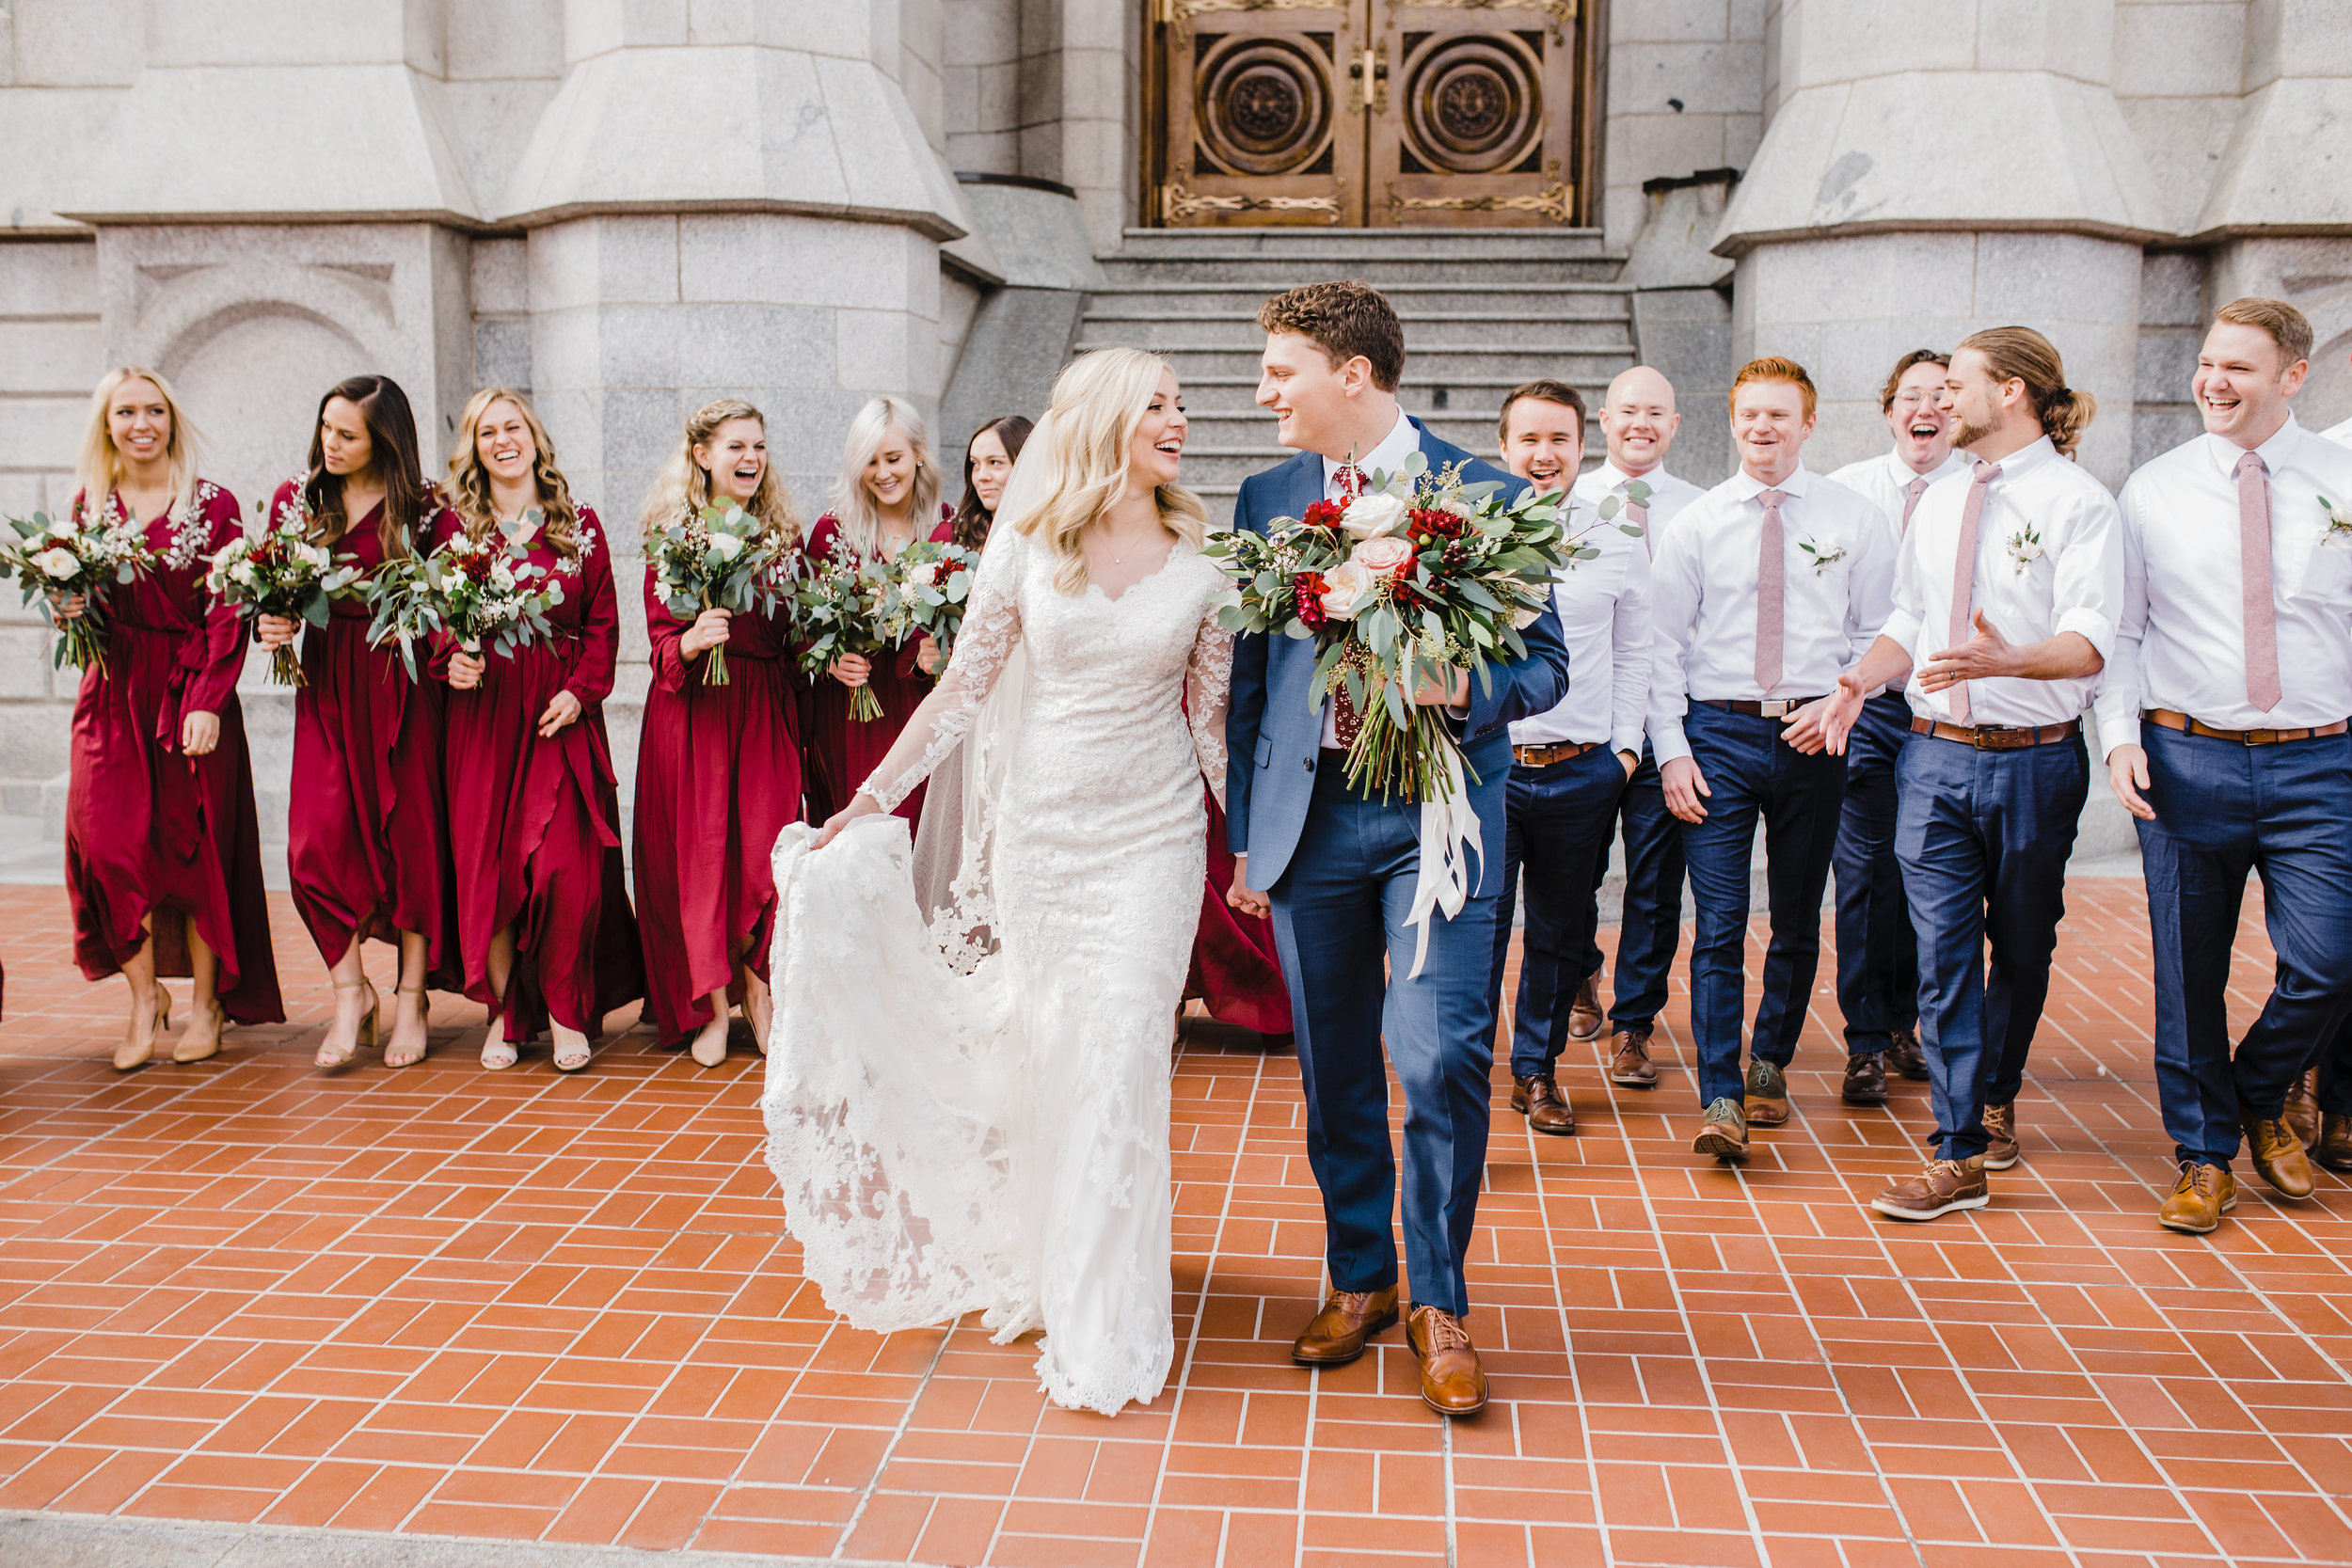 best professional wedding photographer in westminister colorado red bridesmaids dresses nude heels wedding exit laughter lace wedding dress